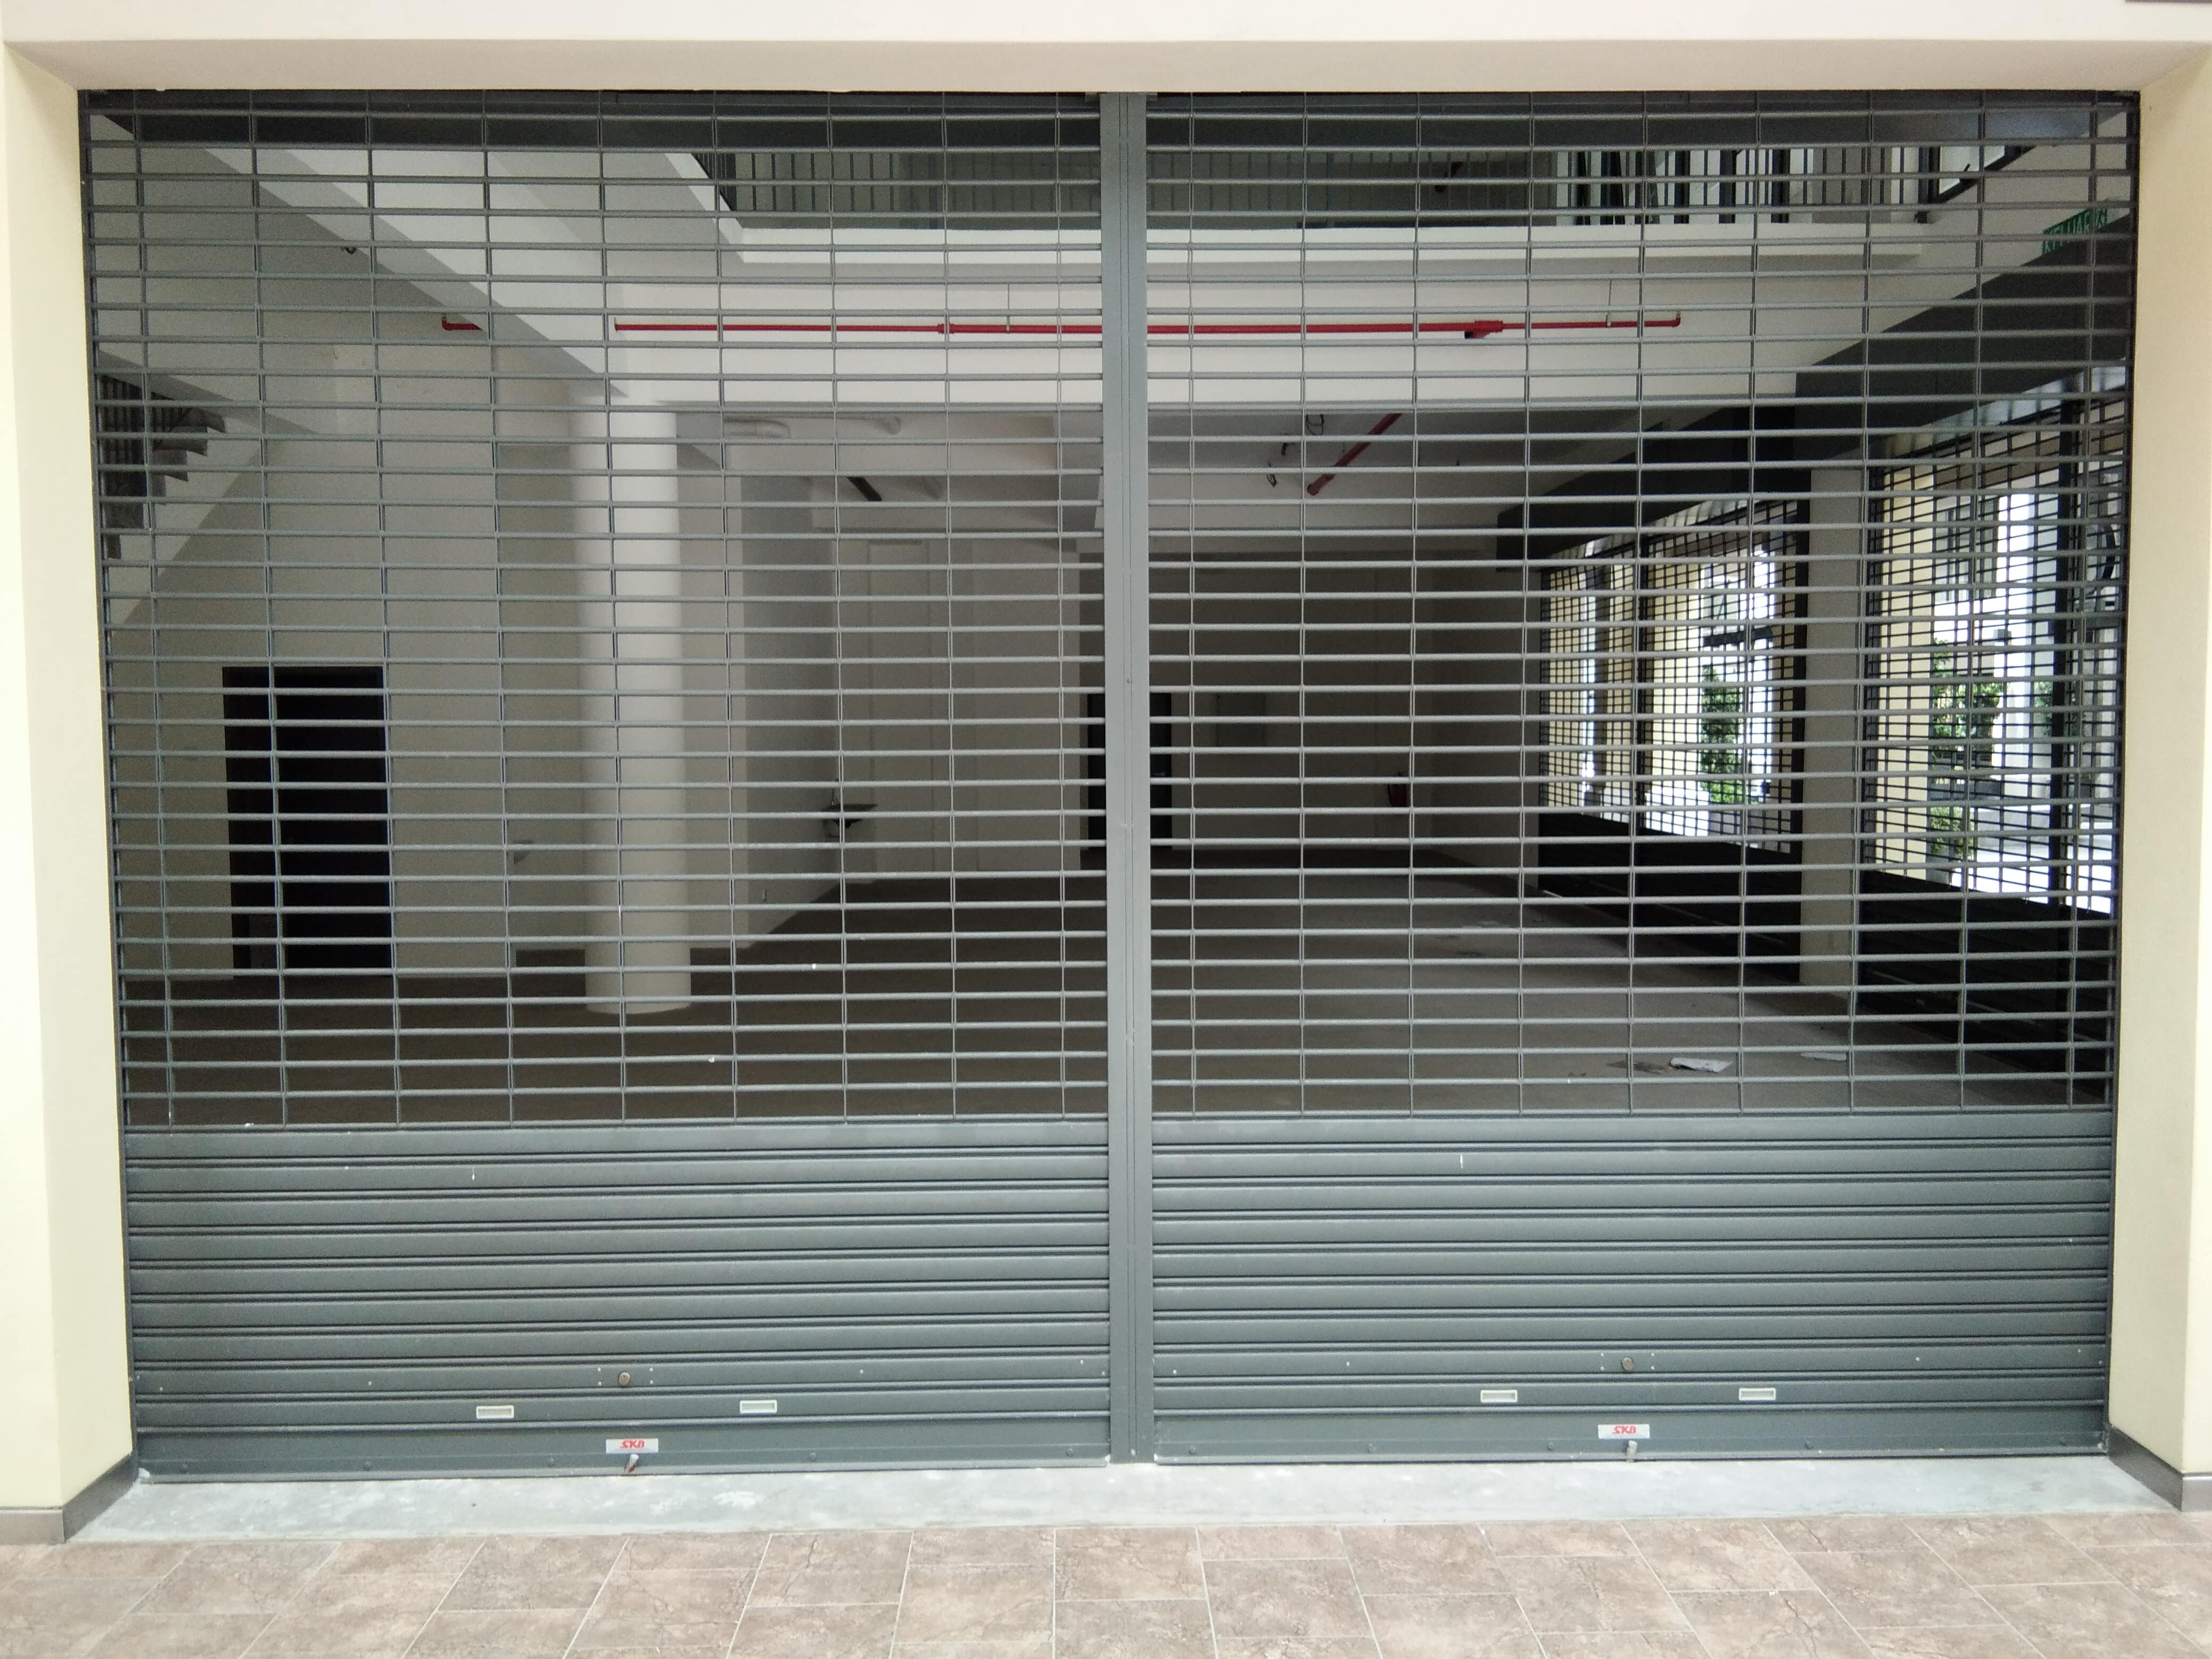 [RENT] PLAZA ARKADIA (Ground floor shop) @Desa ParkCity / 2800sq.ft – RM14,000